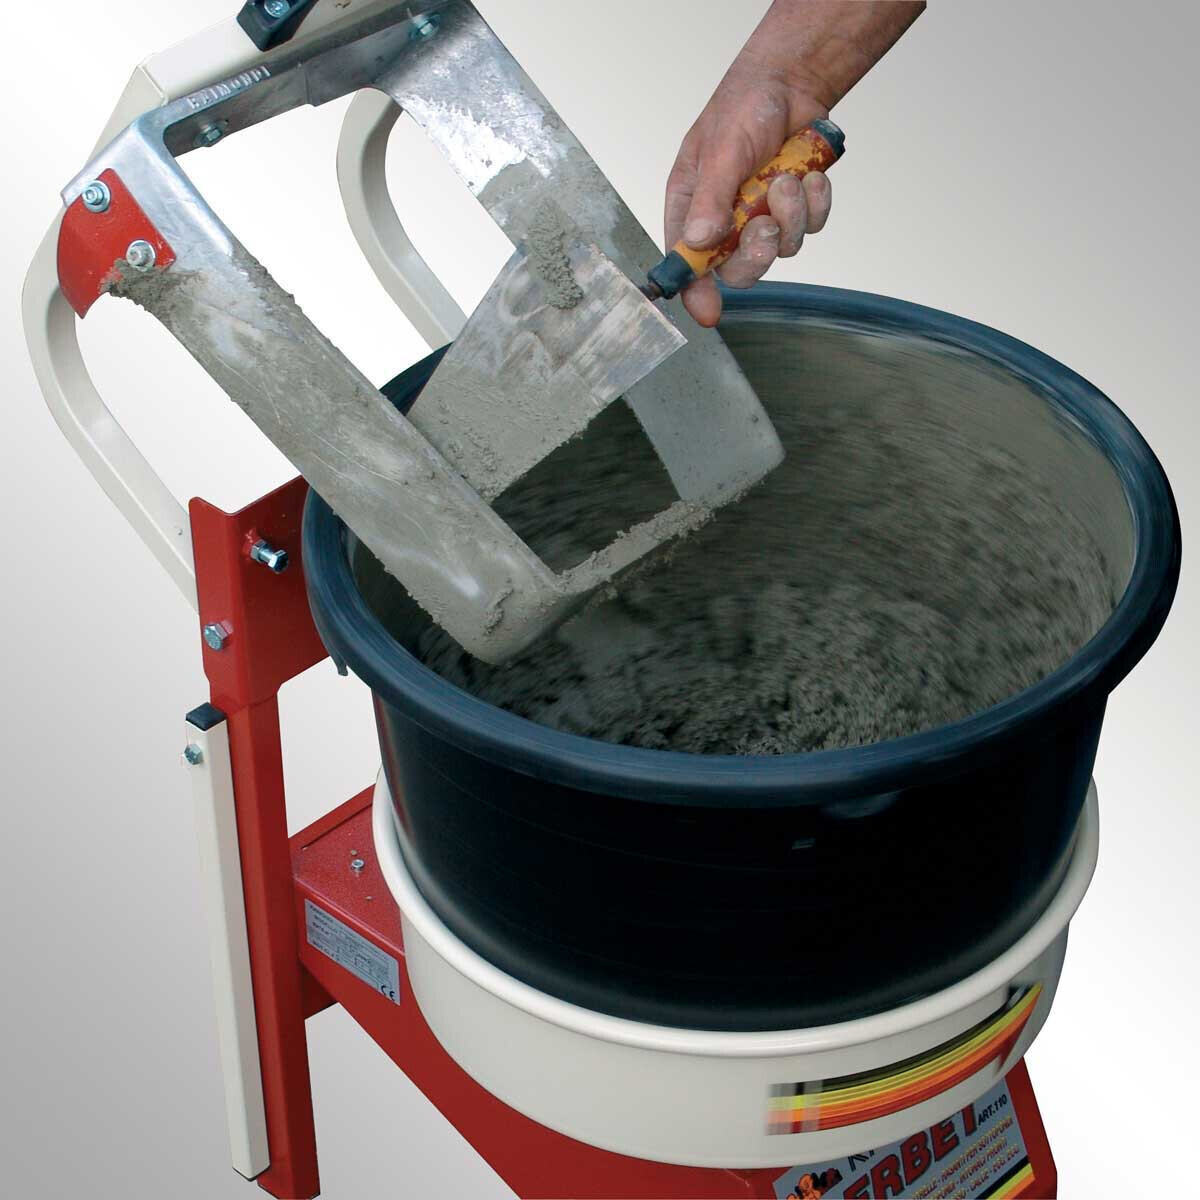 Raimondi Iperbet Allows you to mix thinsets, mortars, dry pack, adhesives, epoxy, concrete, and quartz plaster while you're spending your time on another task